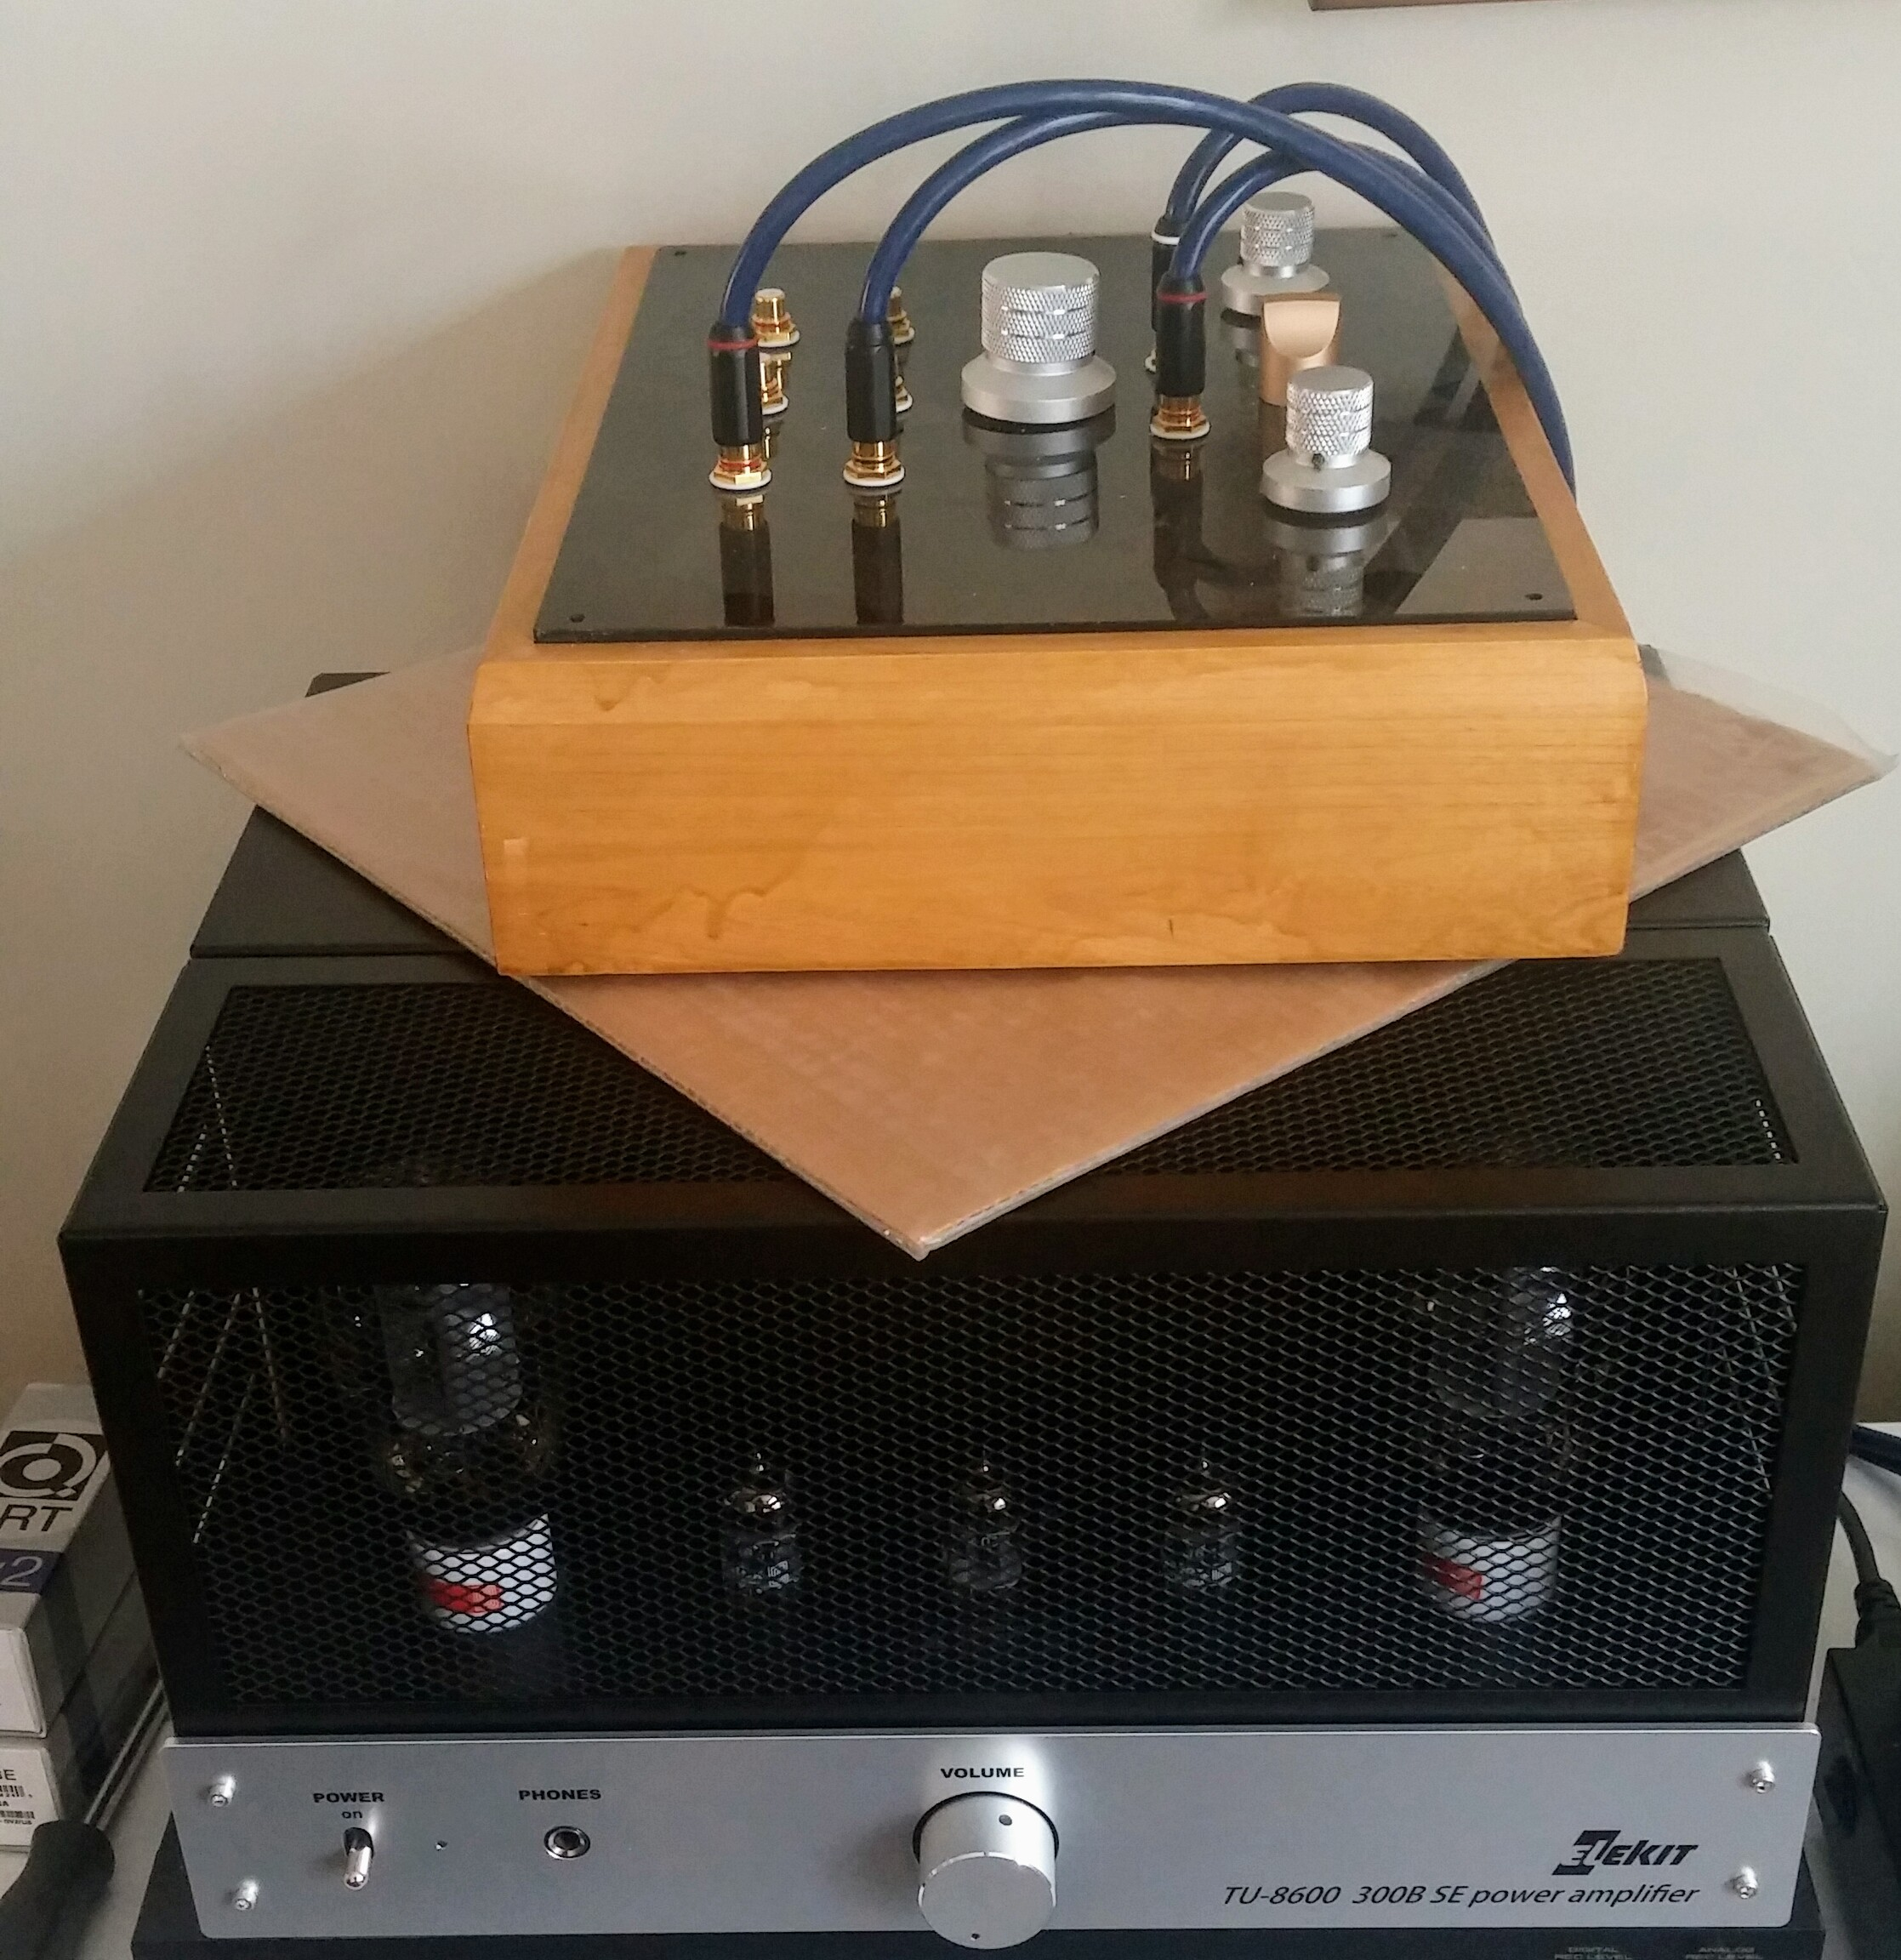 Review: Elekit TU8600 Single-Ended 300B Amp (Part 1) | Wall